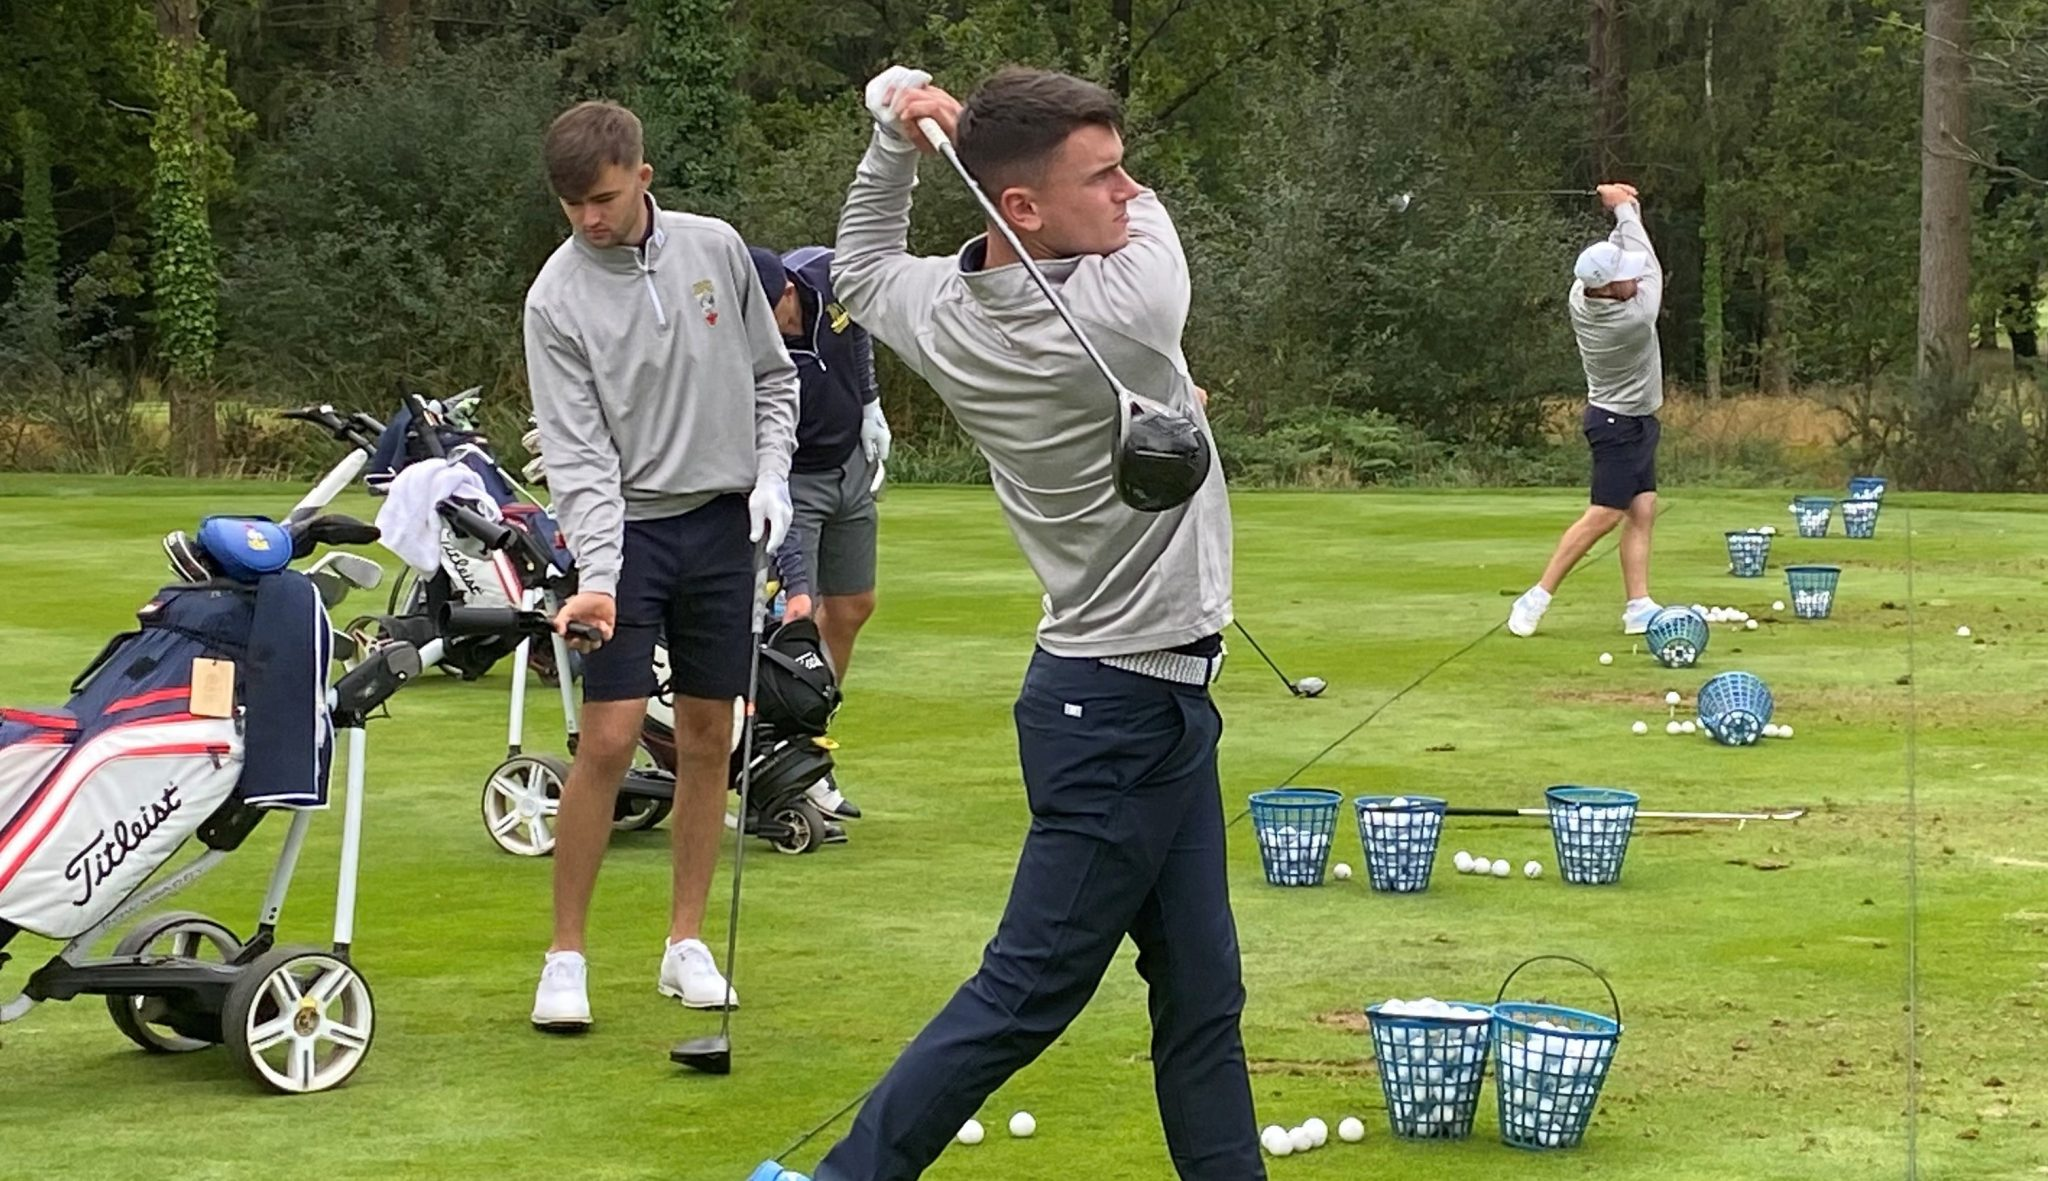 Men's County Finals: Gough 'excited' by return to form and match play shootout